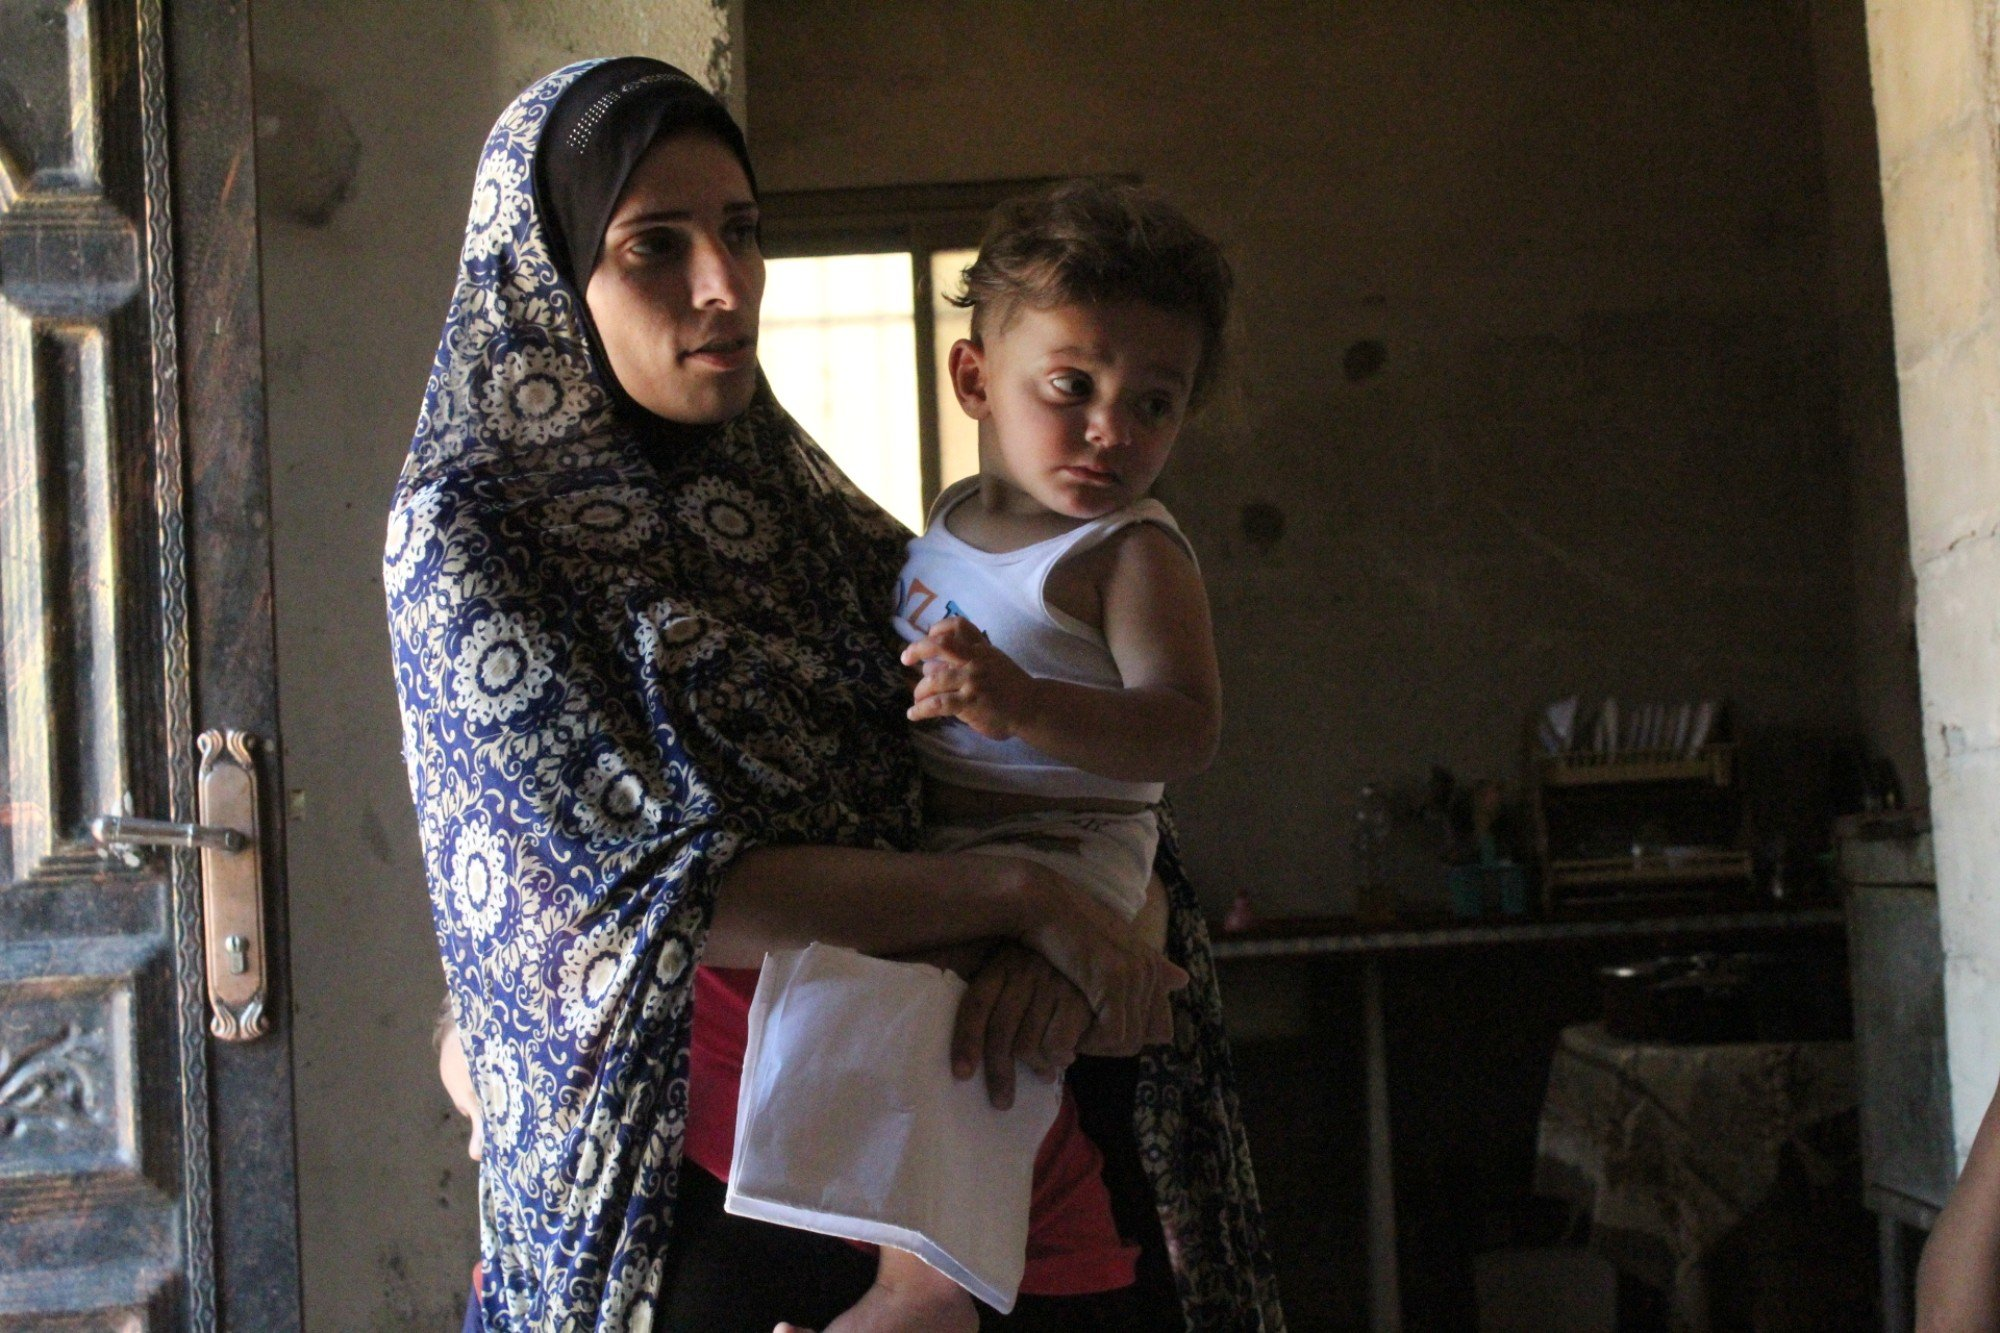 Maye Barakat holds her one-year-old son, who has respiratory problems, and his medical papers (MEE/Megan Giovannetti)